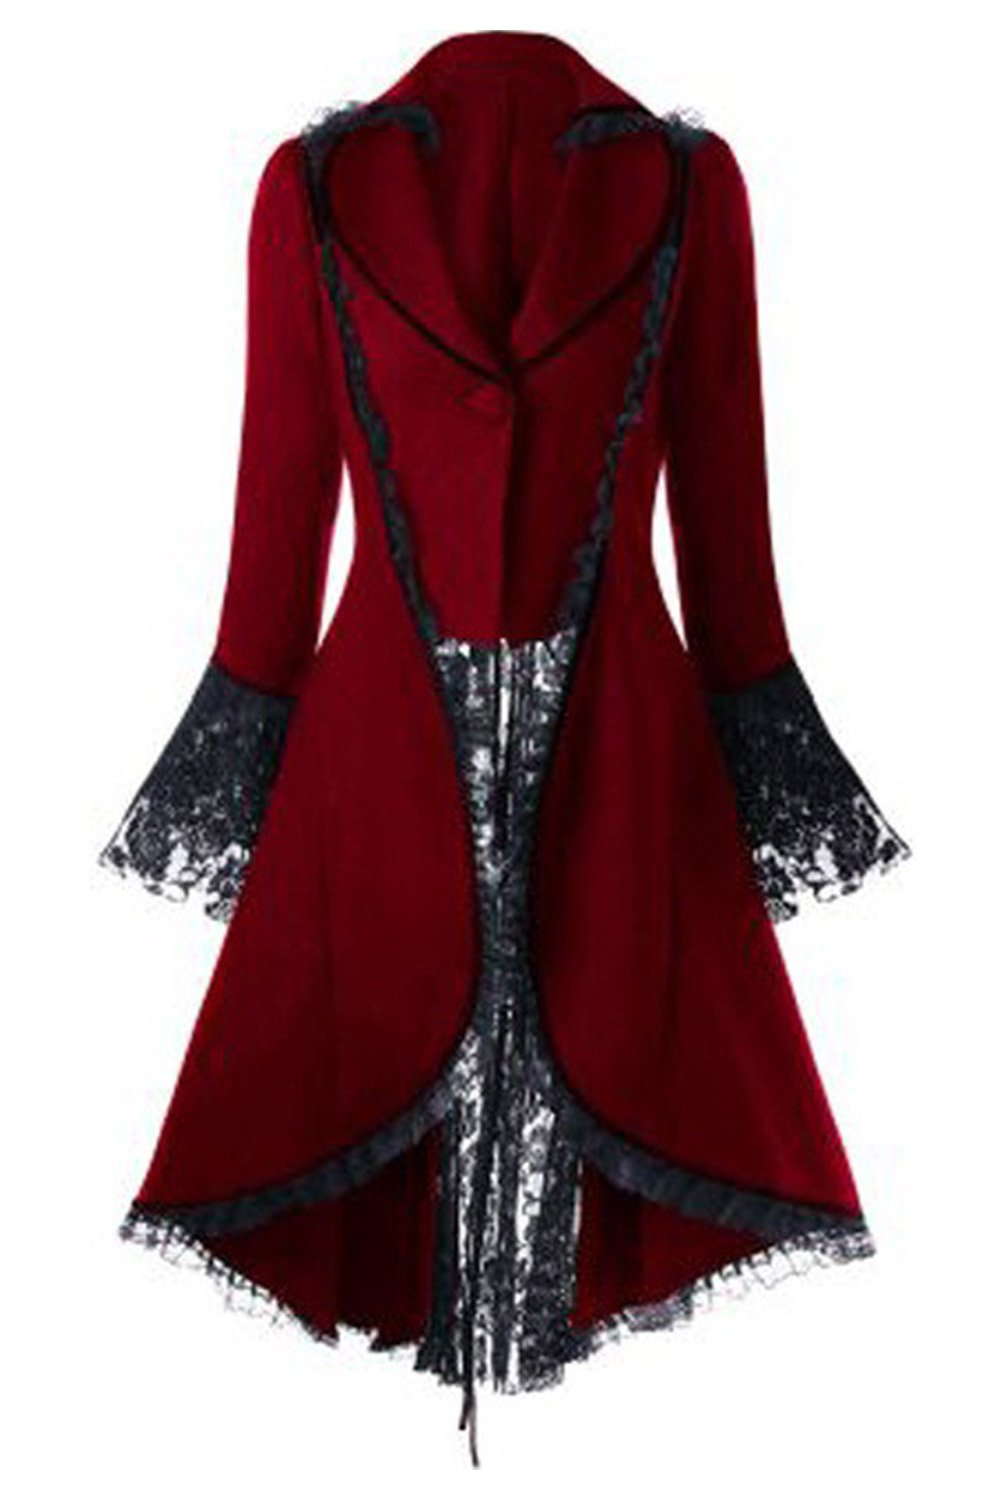 Sinastar Women's Steampunk Vintage Lace Splicing Tuxedo Lace up Gothic CoatTailcoat Red Black